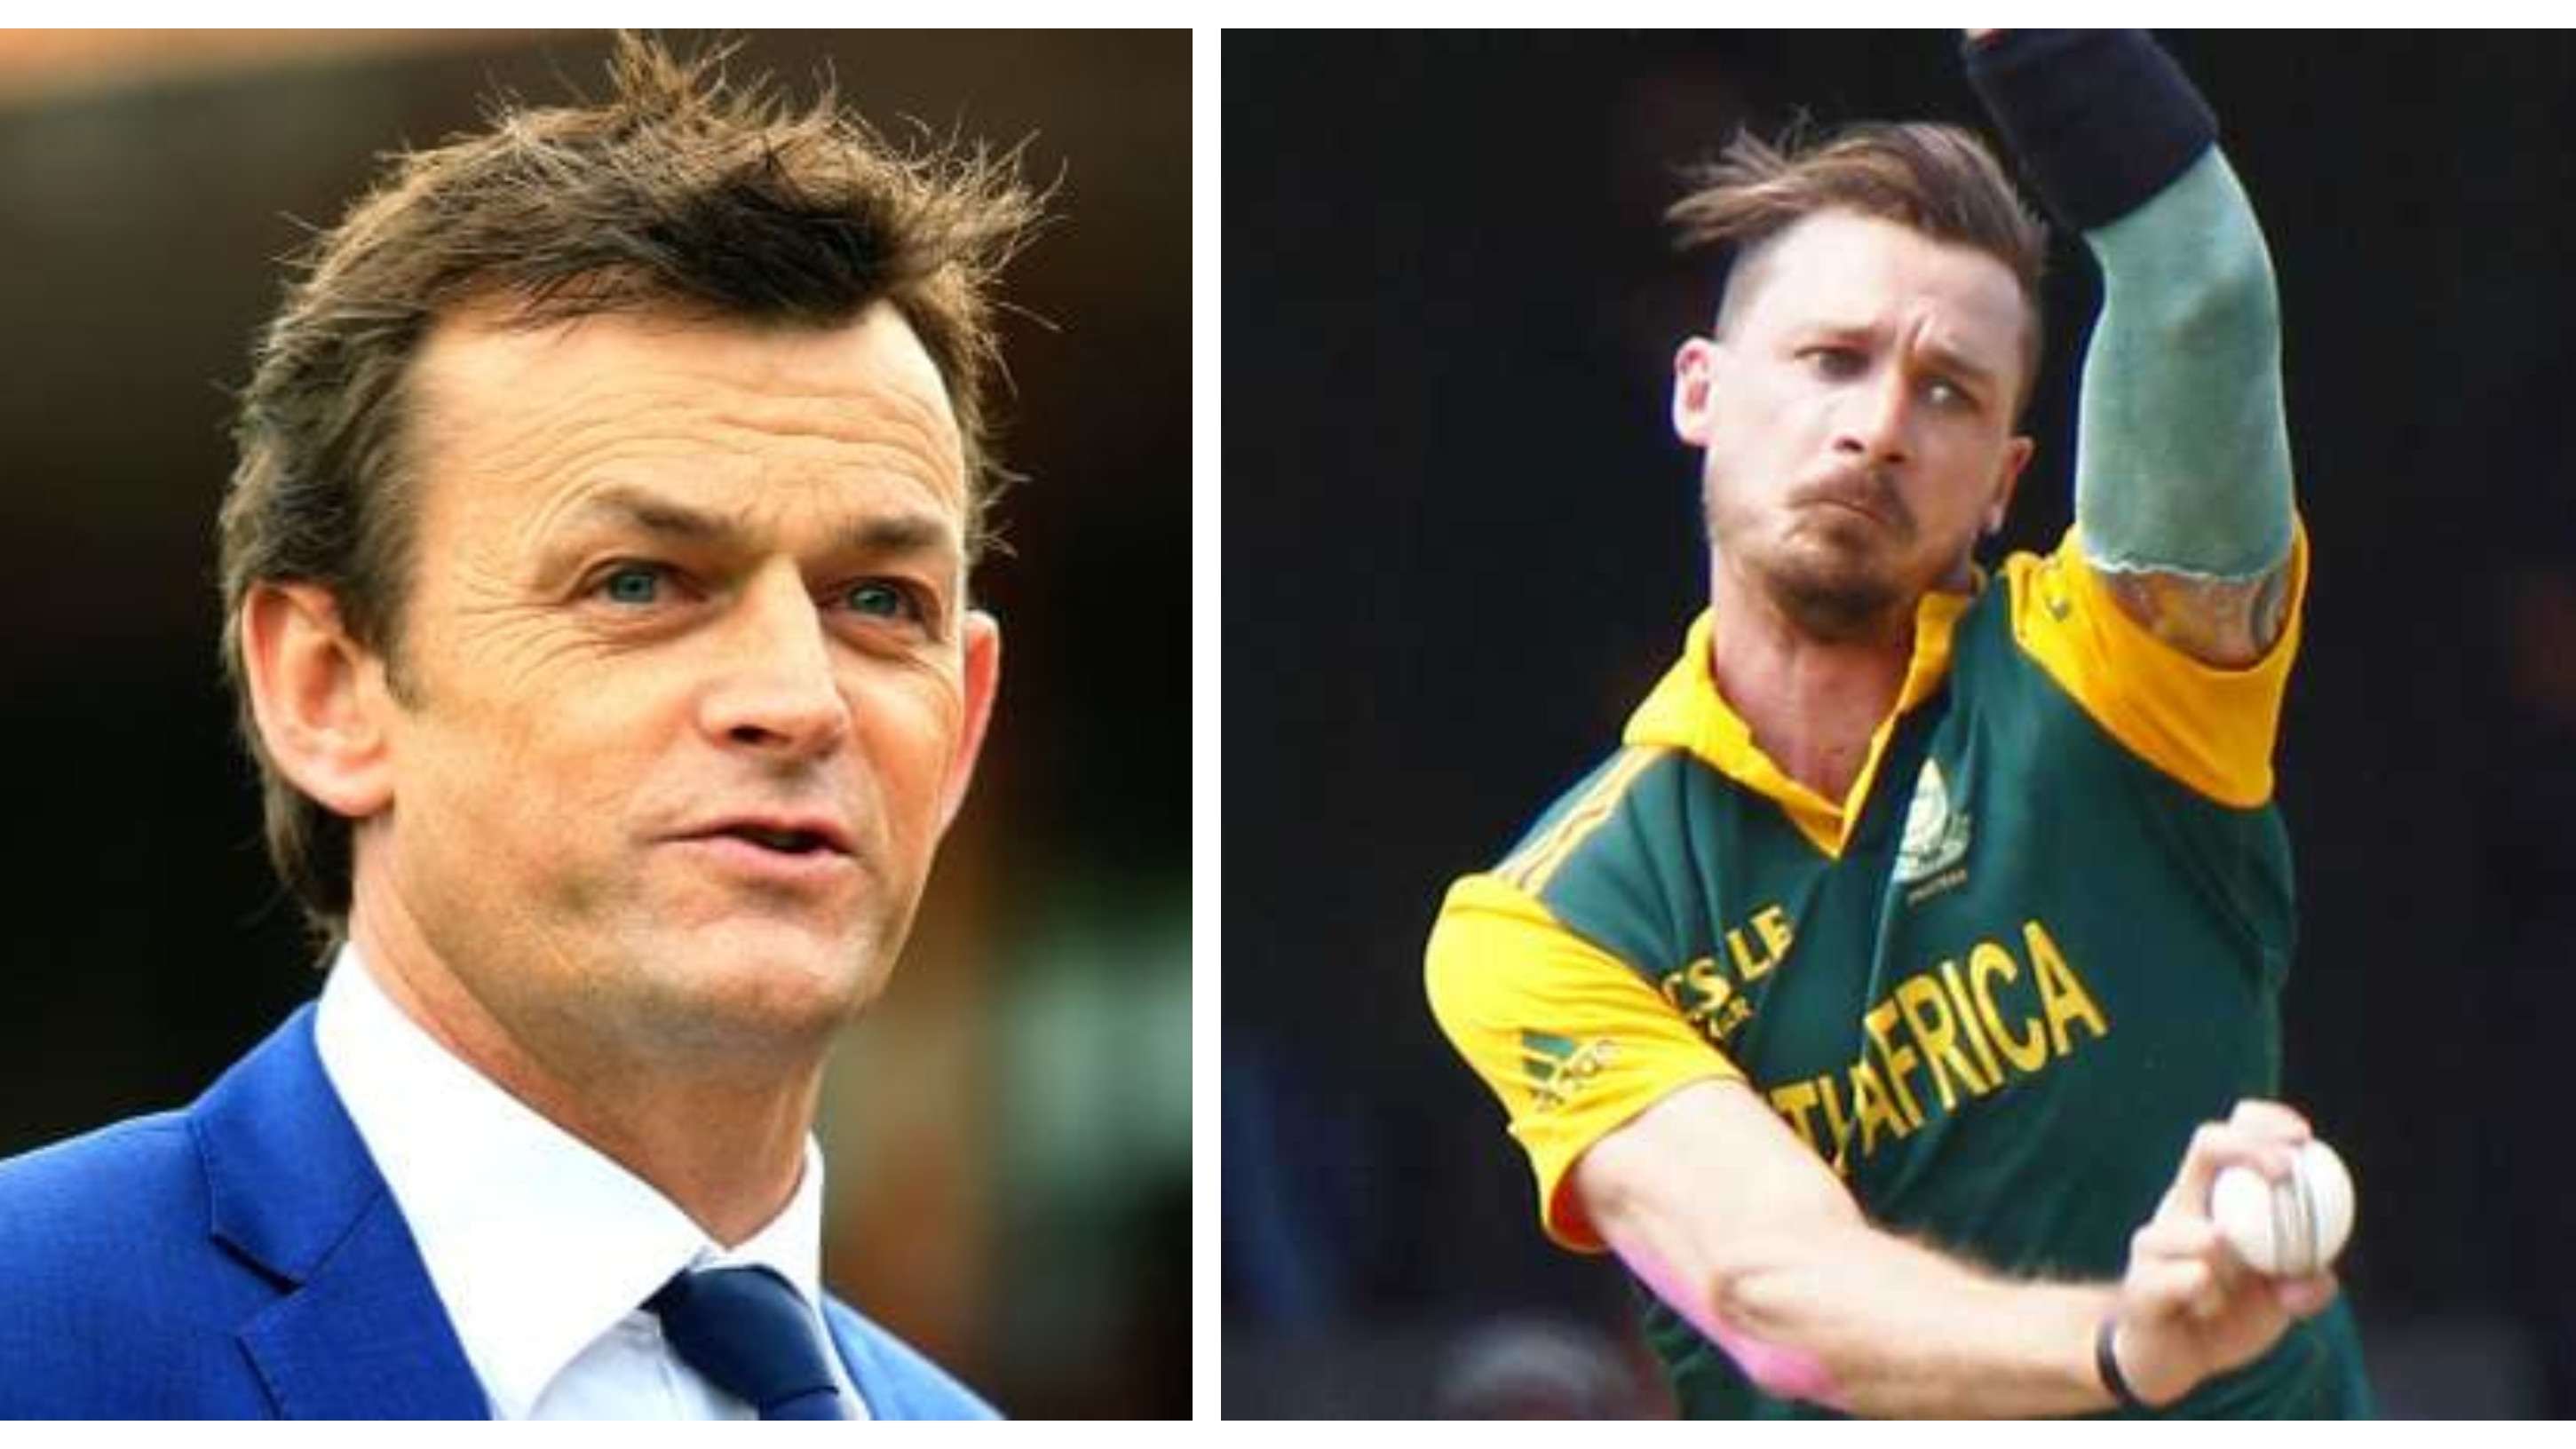 AUS v SA 2018: Steyn's got to rank up in the top echelon of fast bowlers ever, says Adam Gilchrist